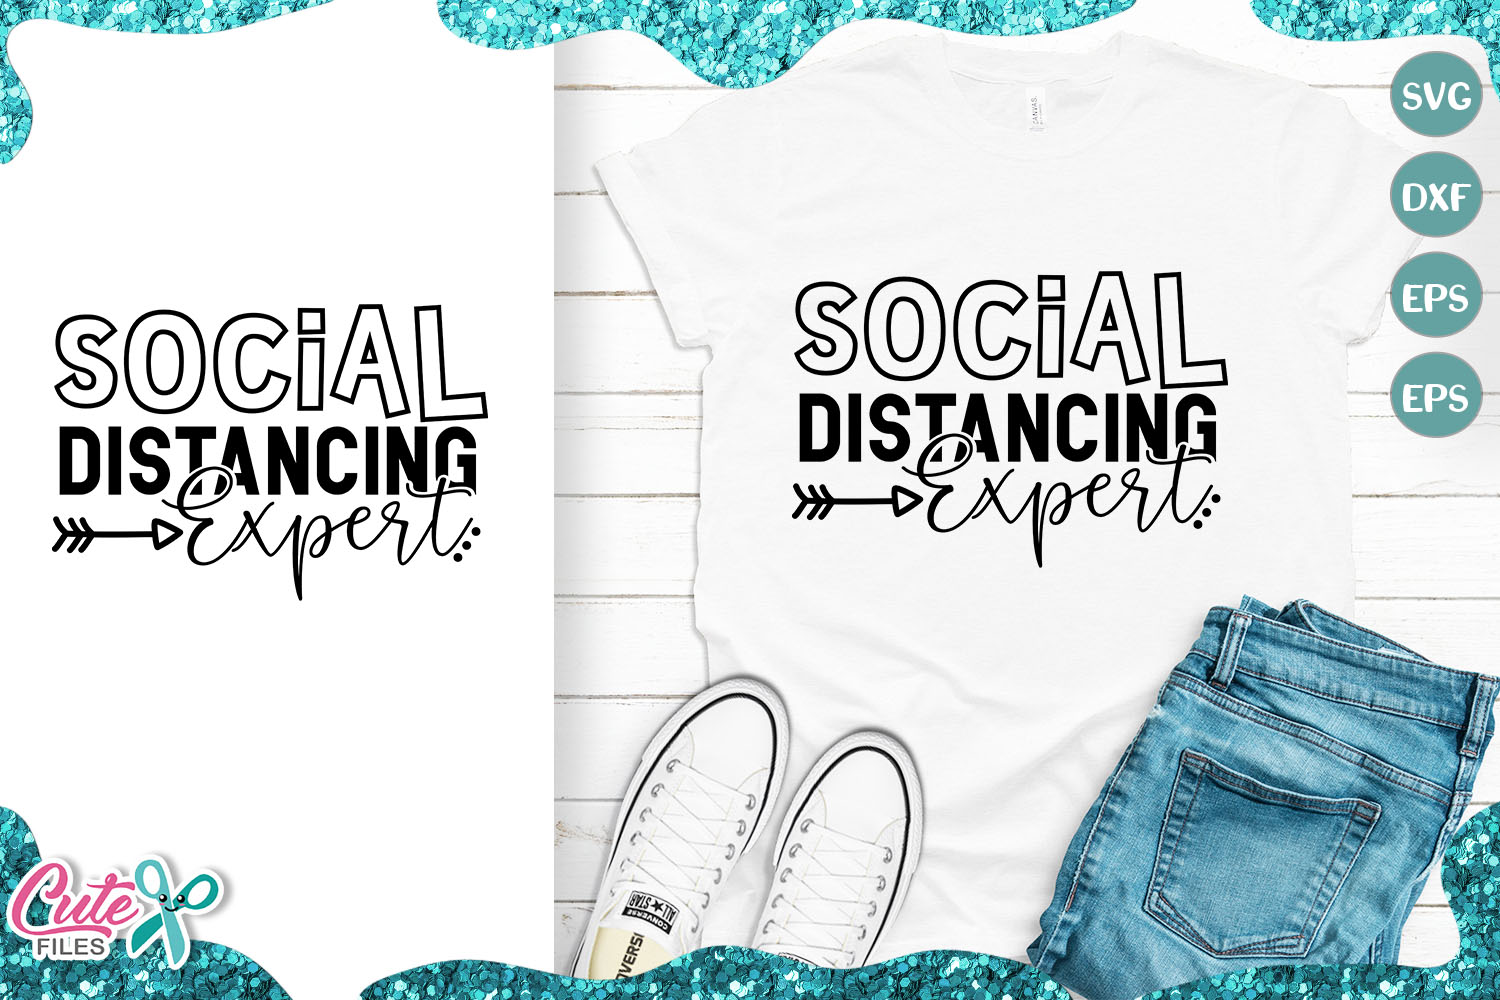 Download Free Social Distancing Expert Graphic By Cute Files Creative Fabrica for Cricut Explore, Silhouette and other cutting machines.